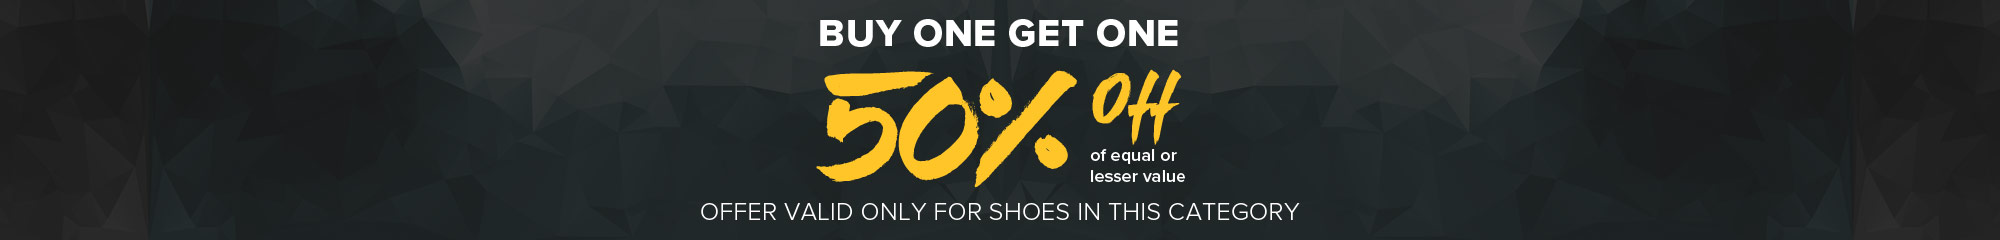 Buy One Get One 50% off Shoes